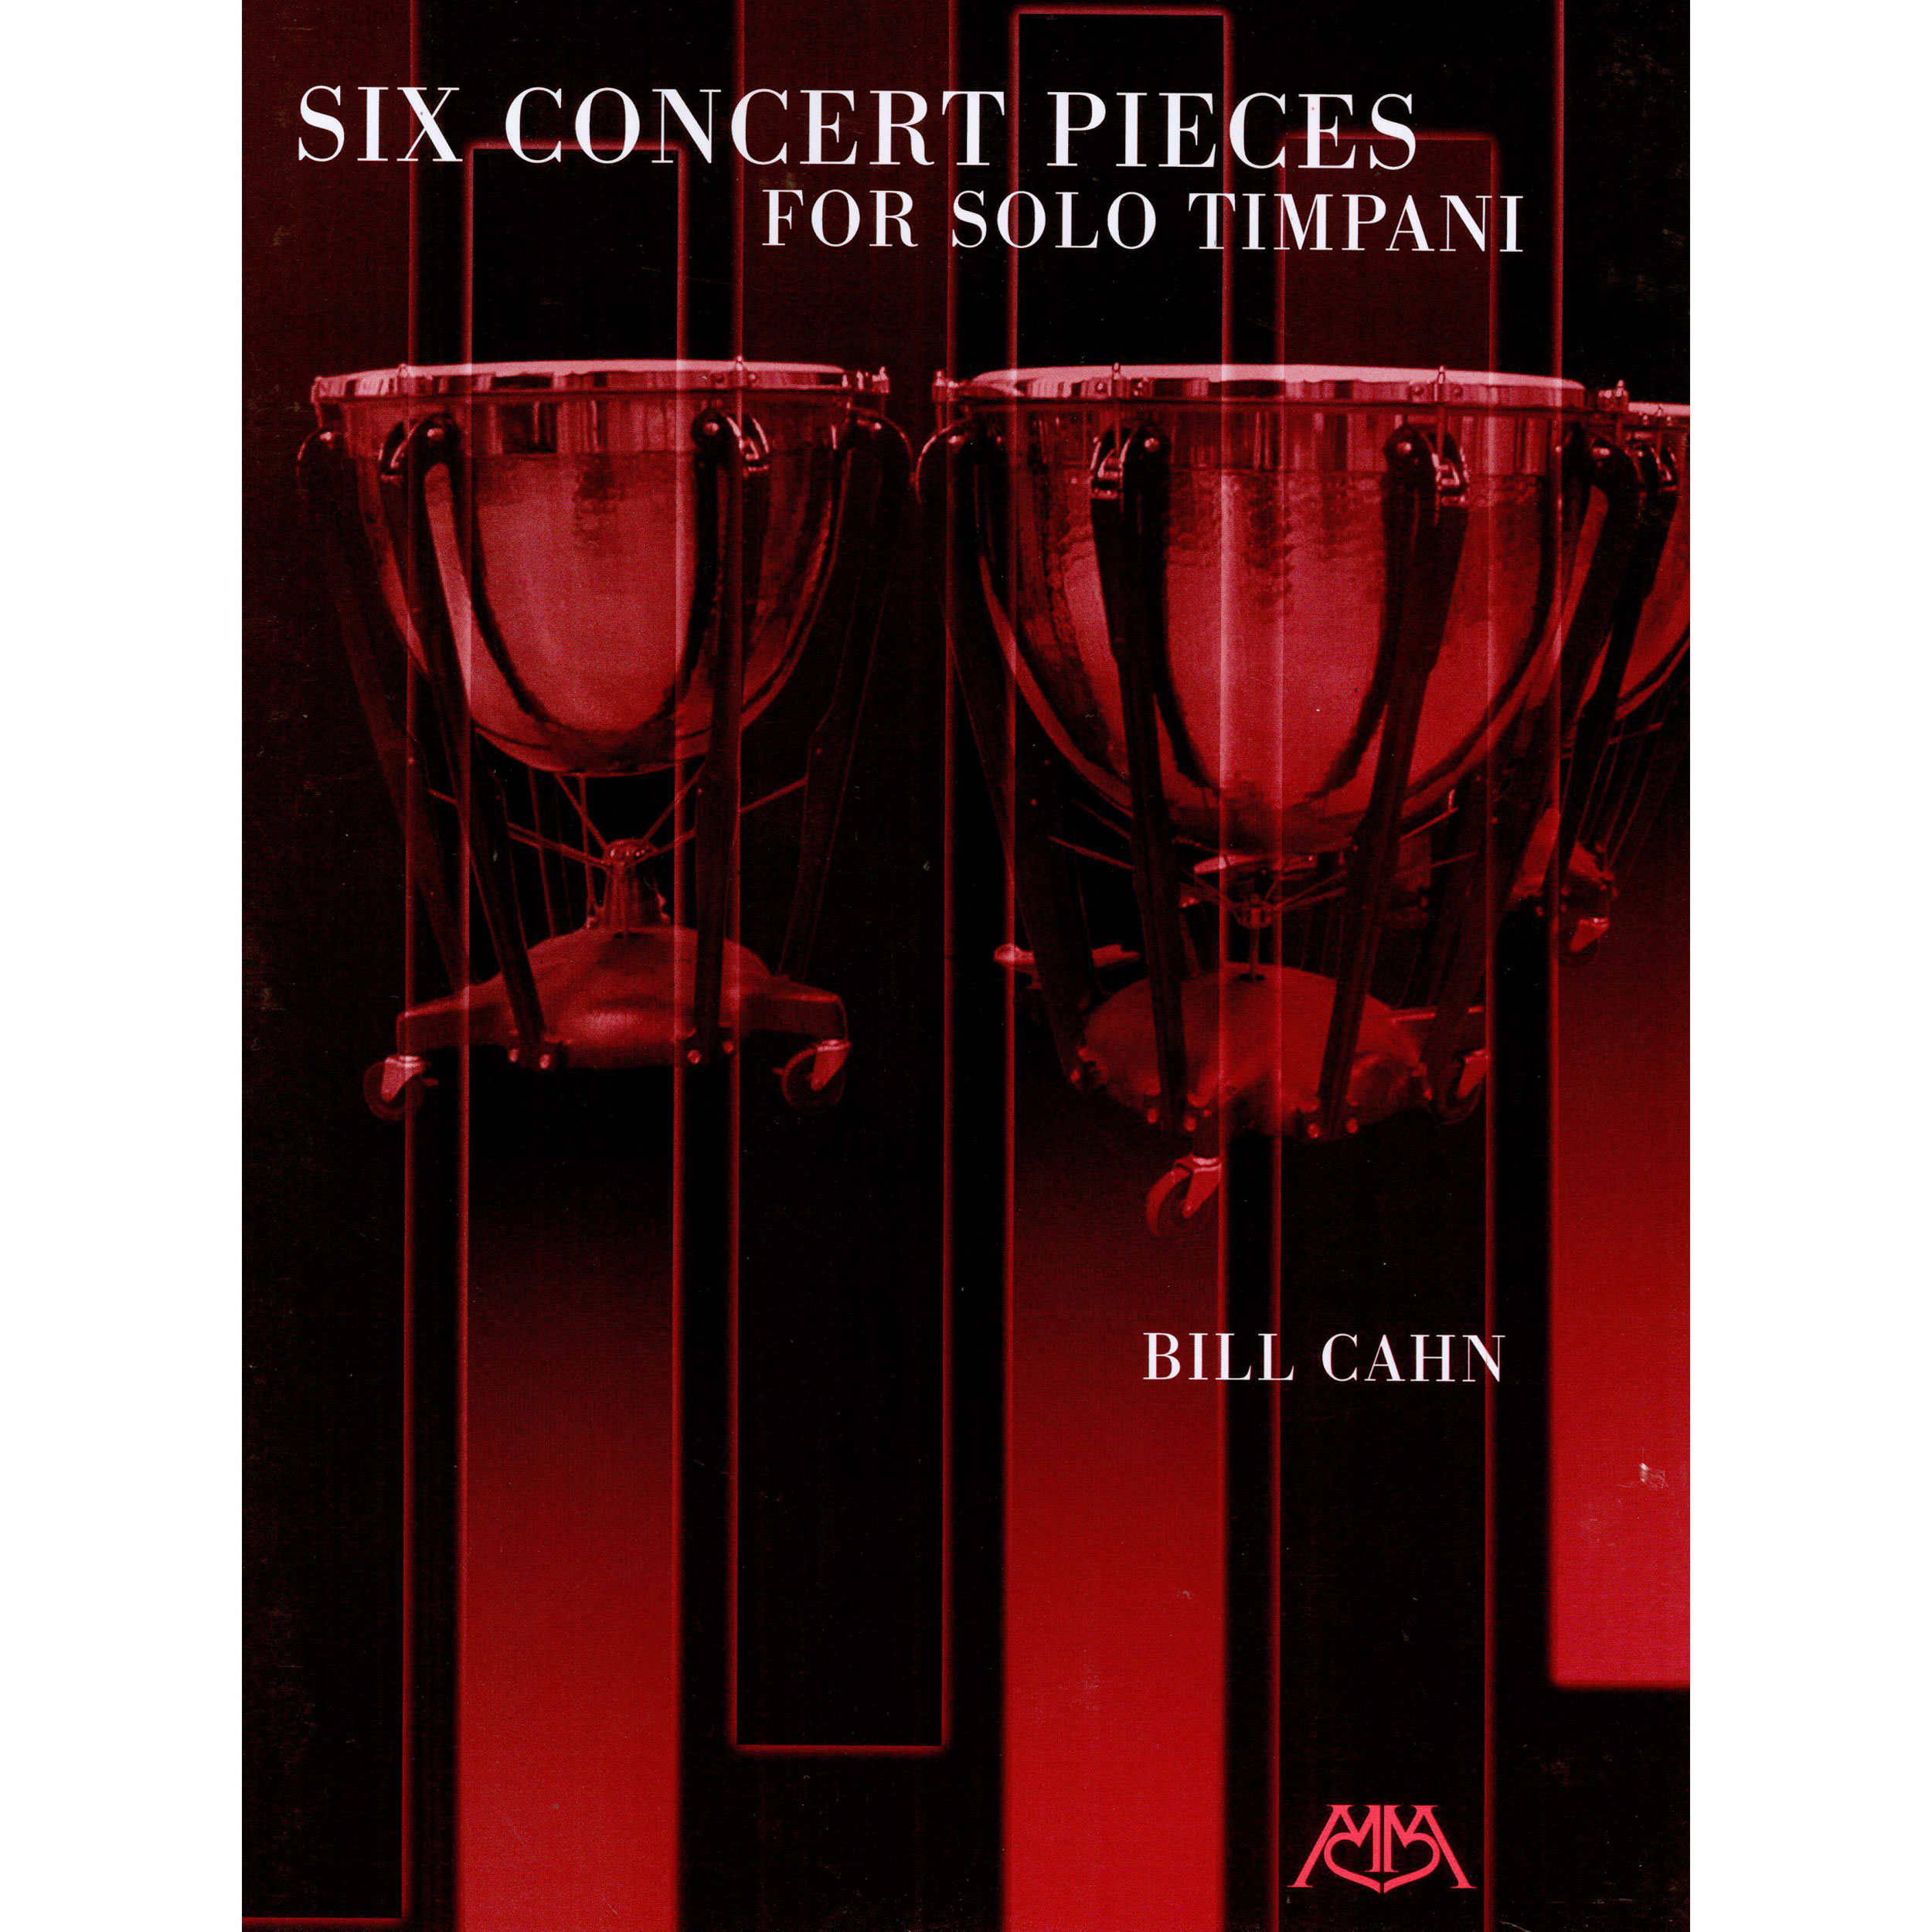 Six Concert Pieces for Solo Timpani by William Cahn